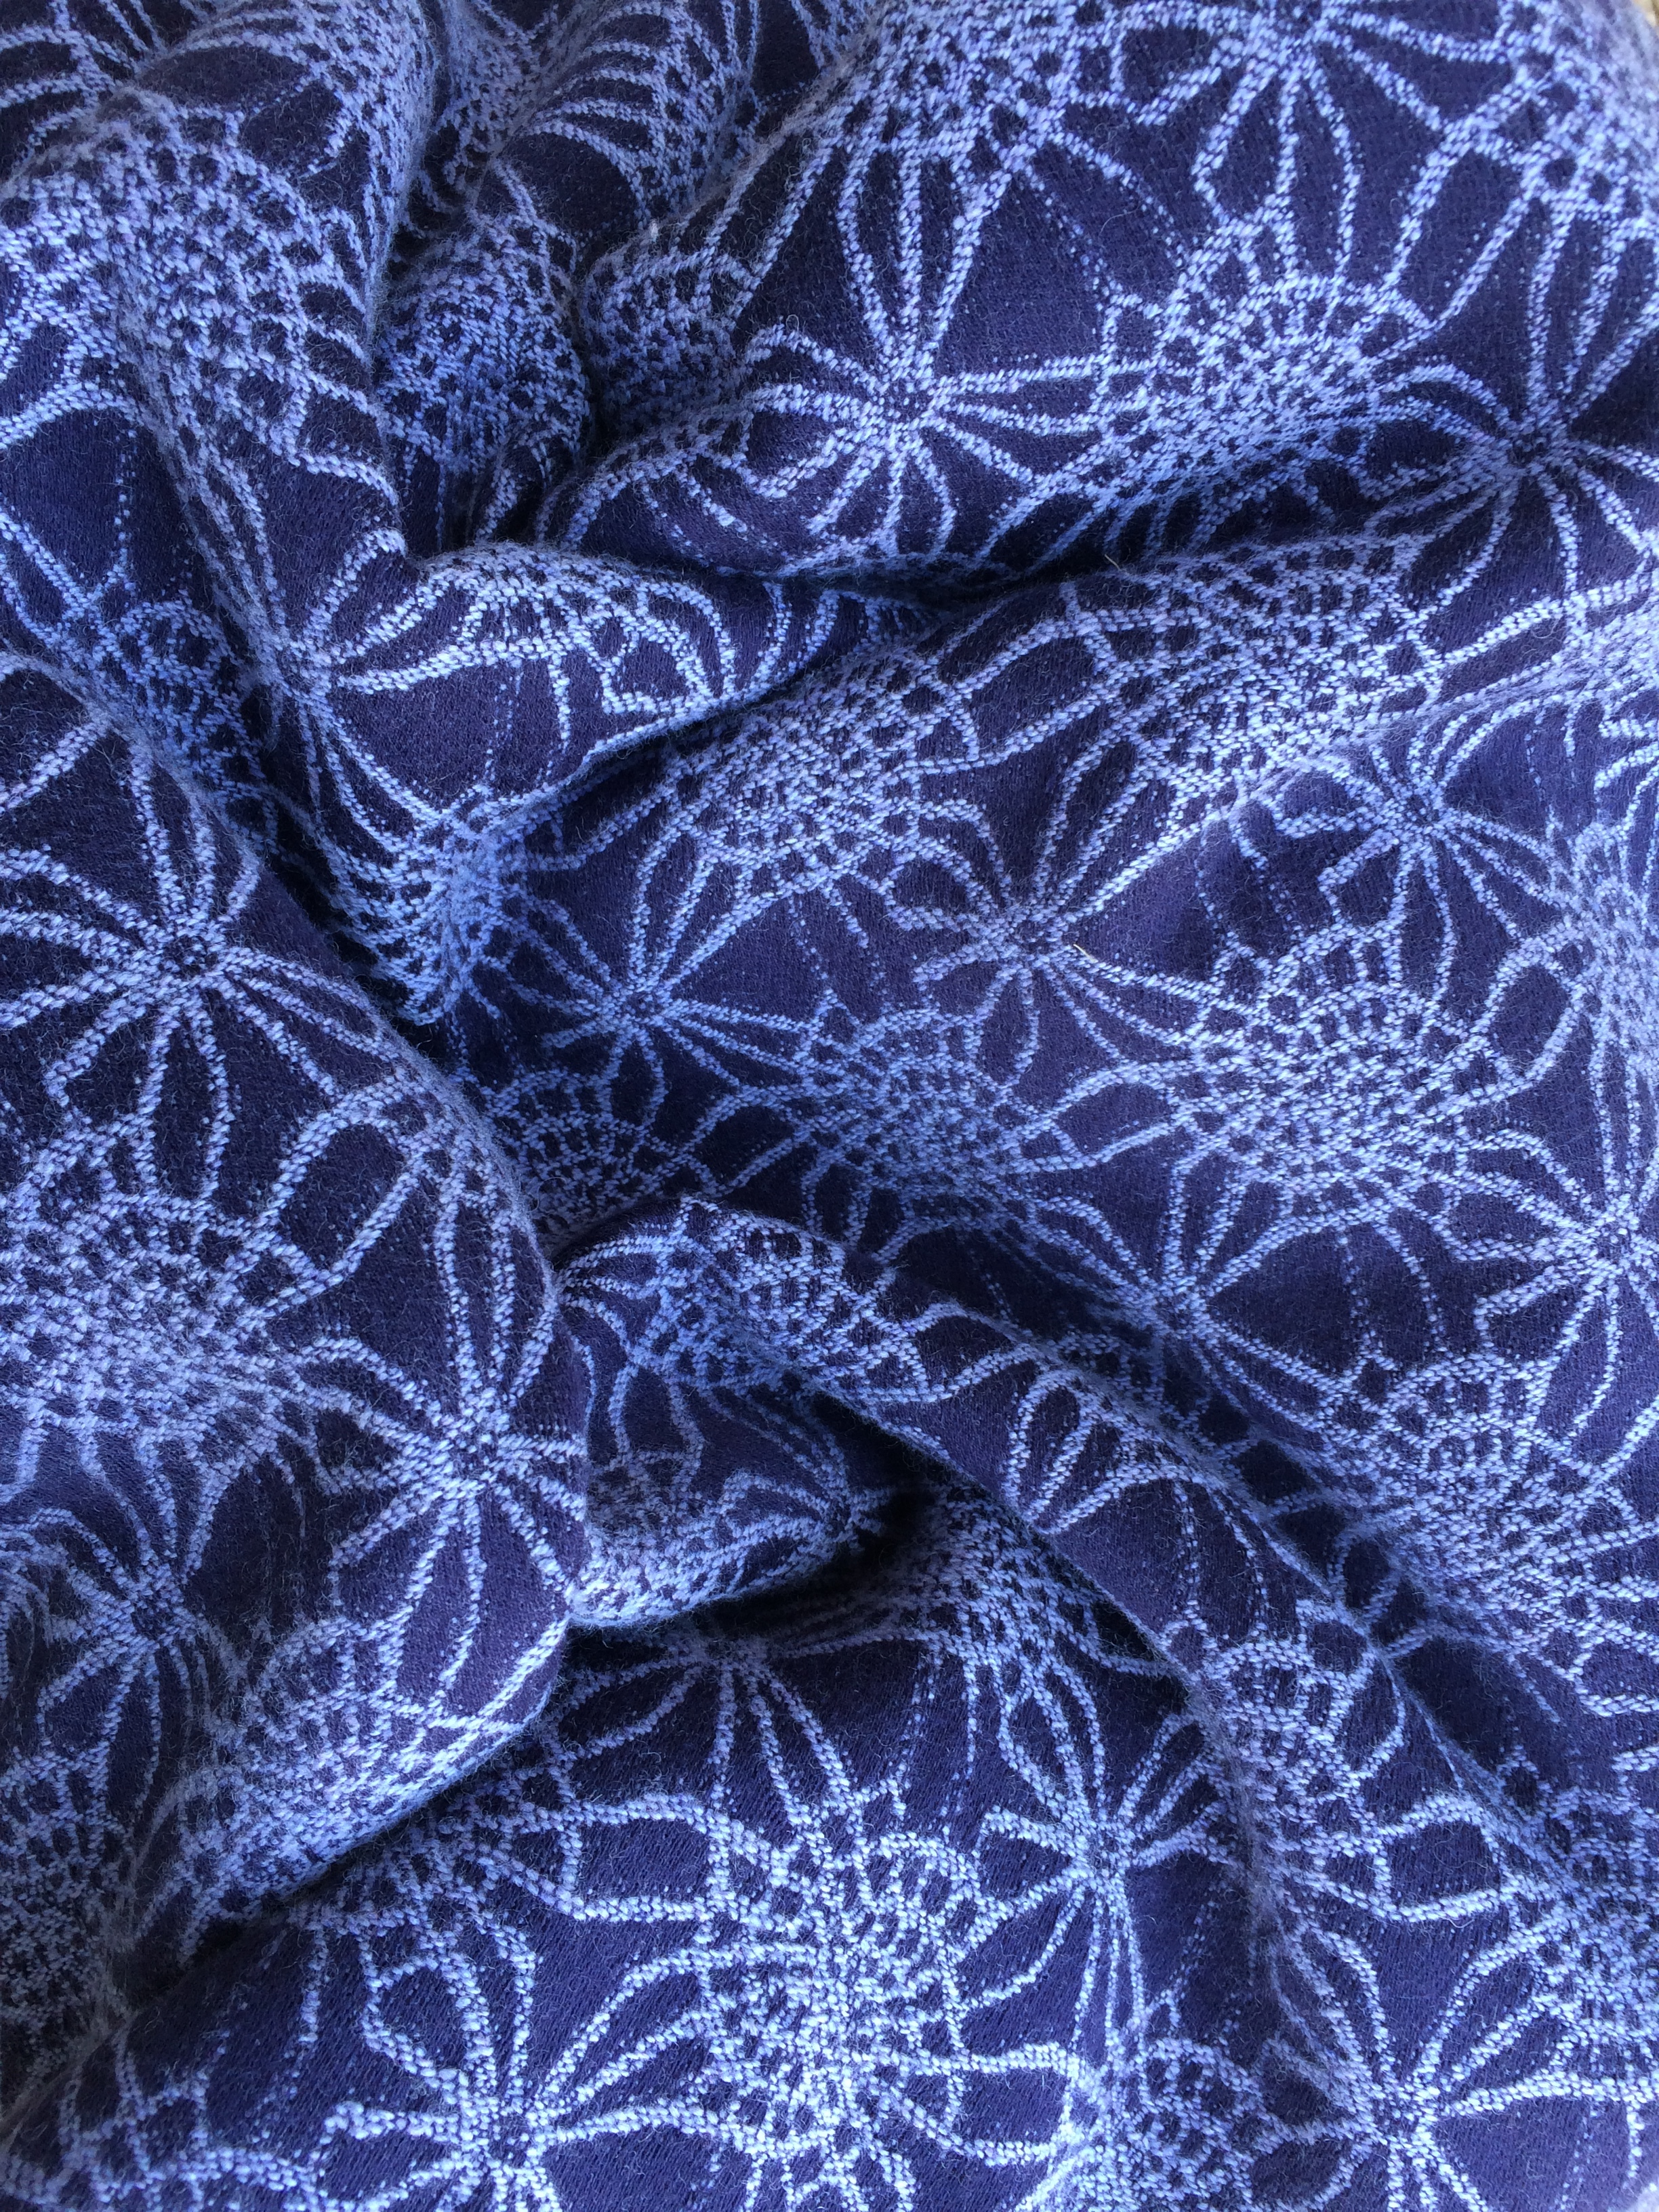 Lambswool goodness - Firespiral Grape Twilight Fractals